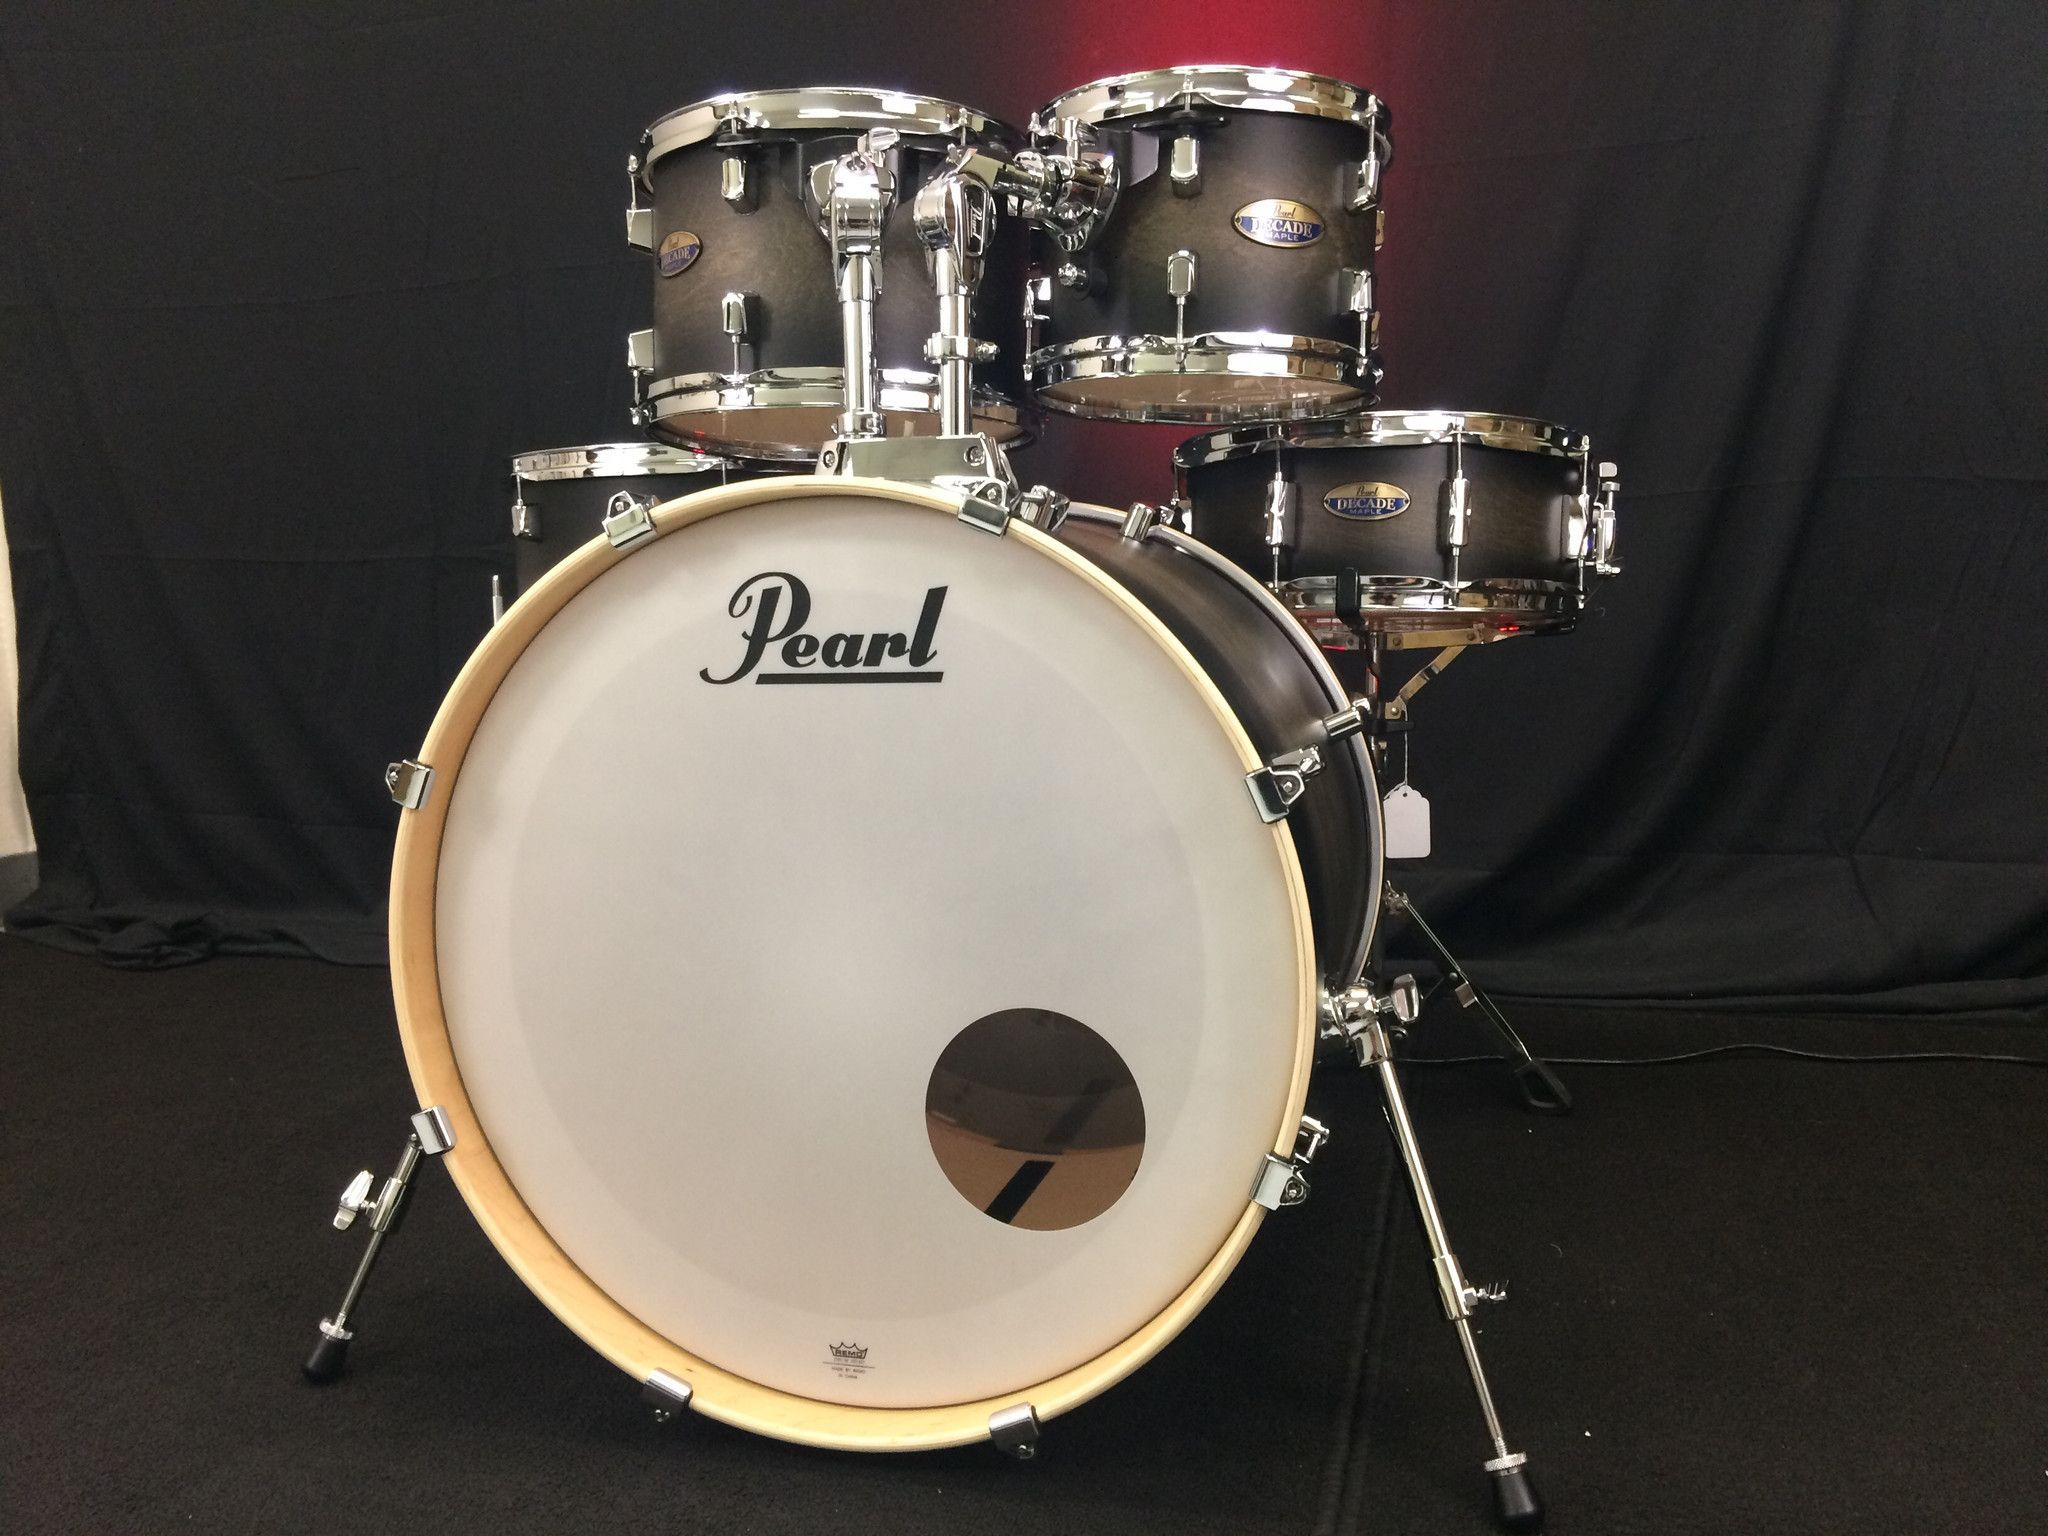 Pearl Decade Maple Satin Black Burst 22 16 12 10 14 Snare Brand